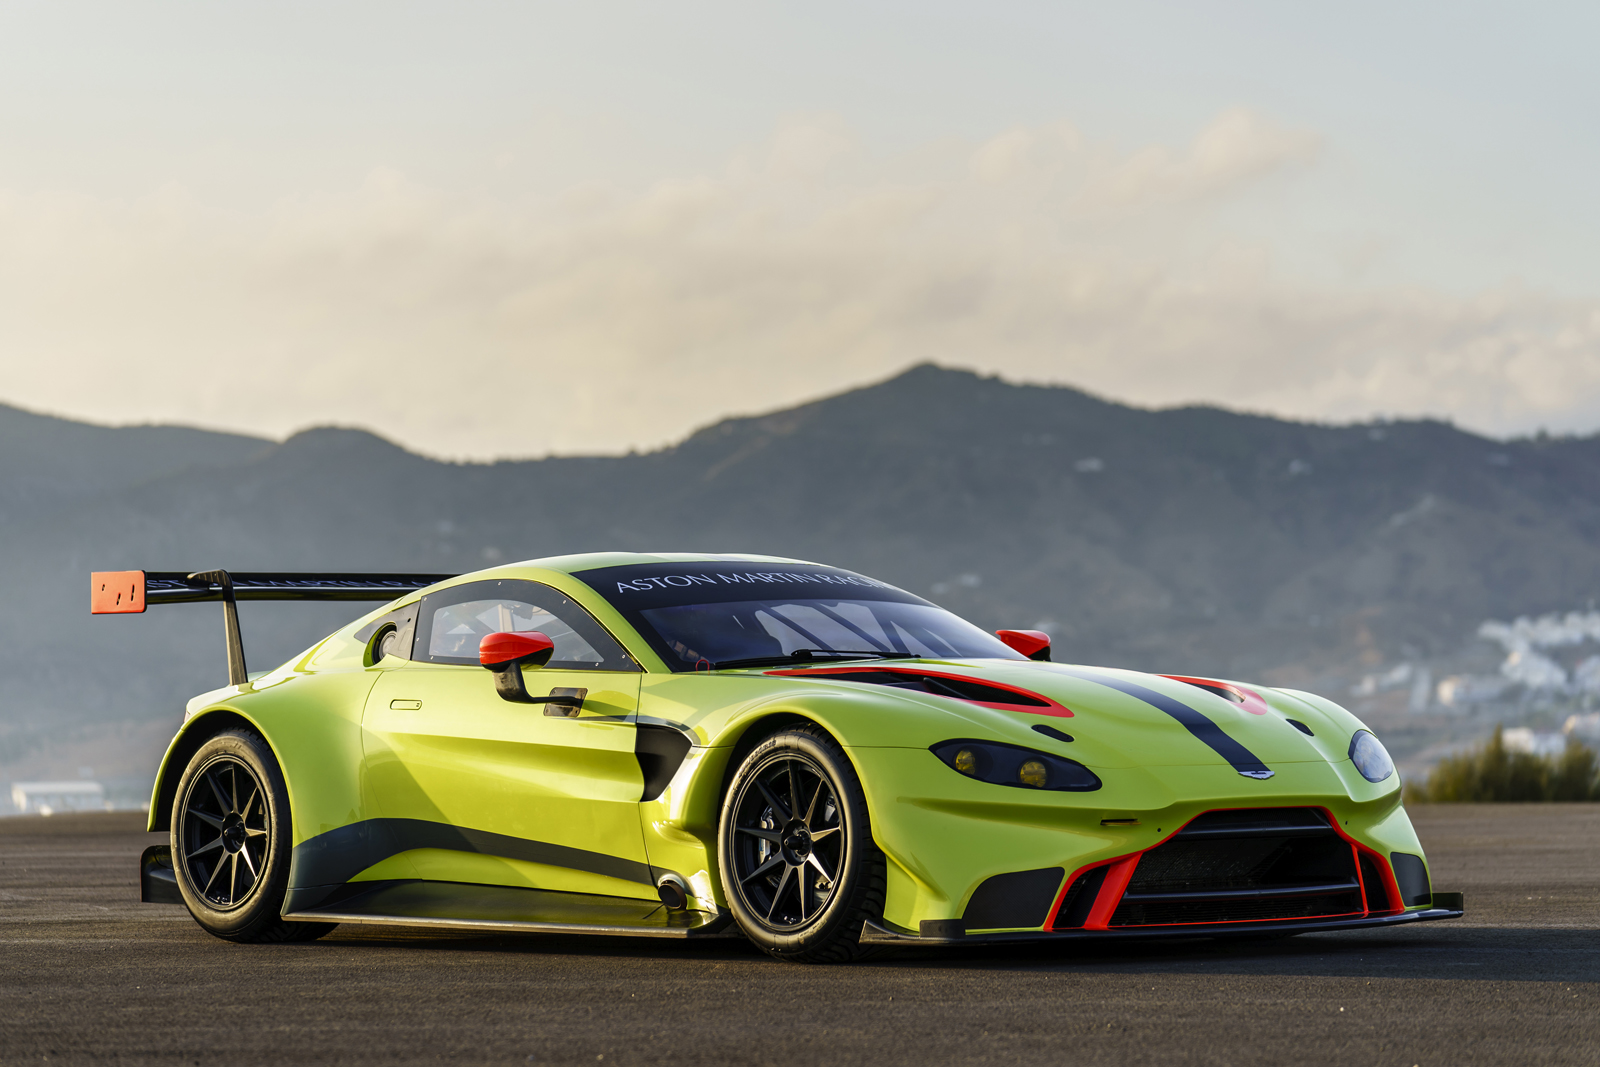 Aston Martin to Defend Le Mans Victory in All New Vantage GTE